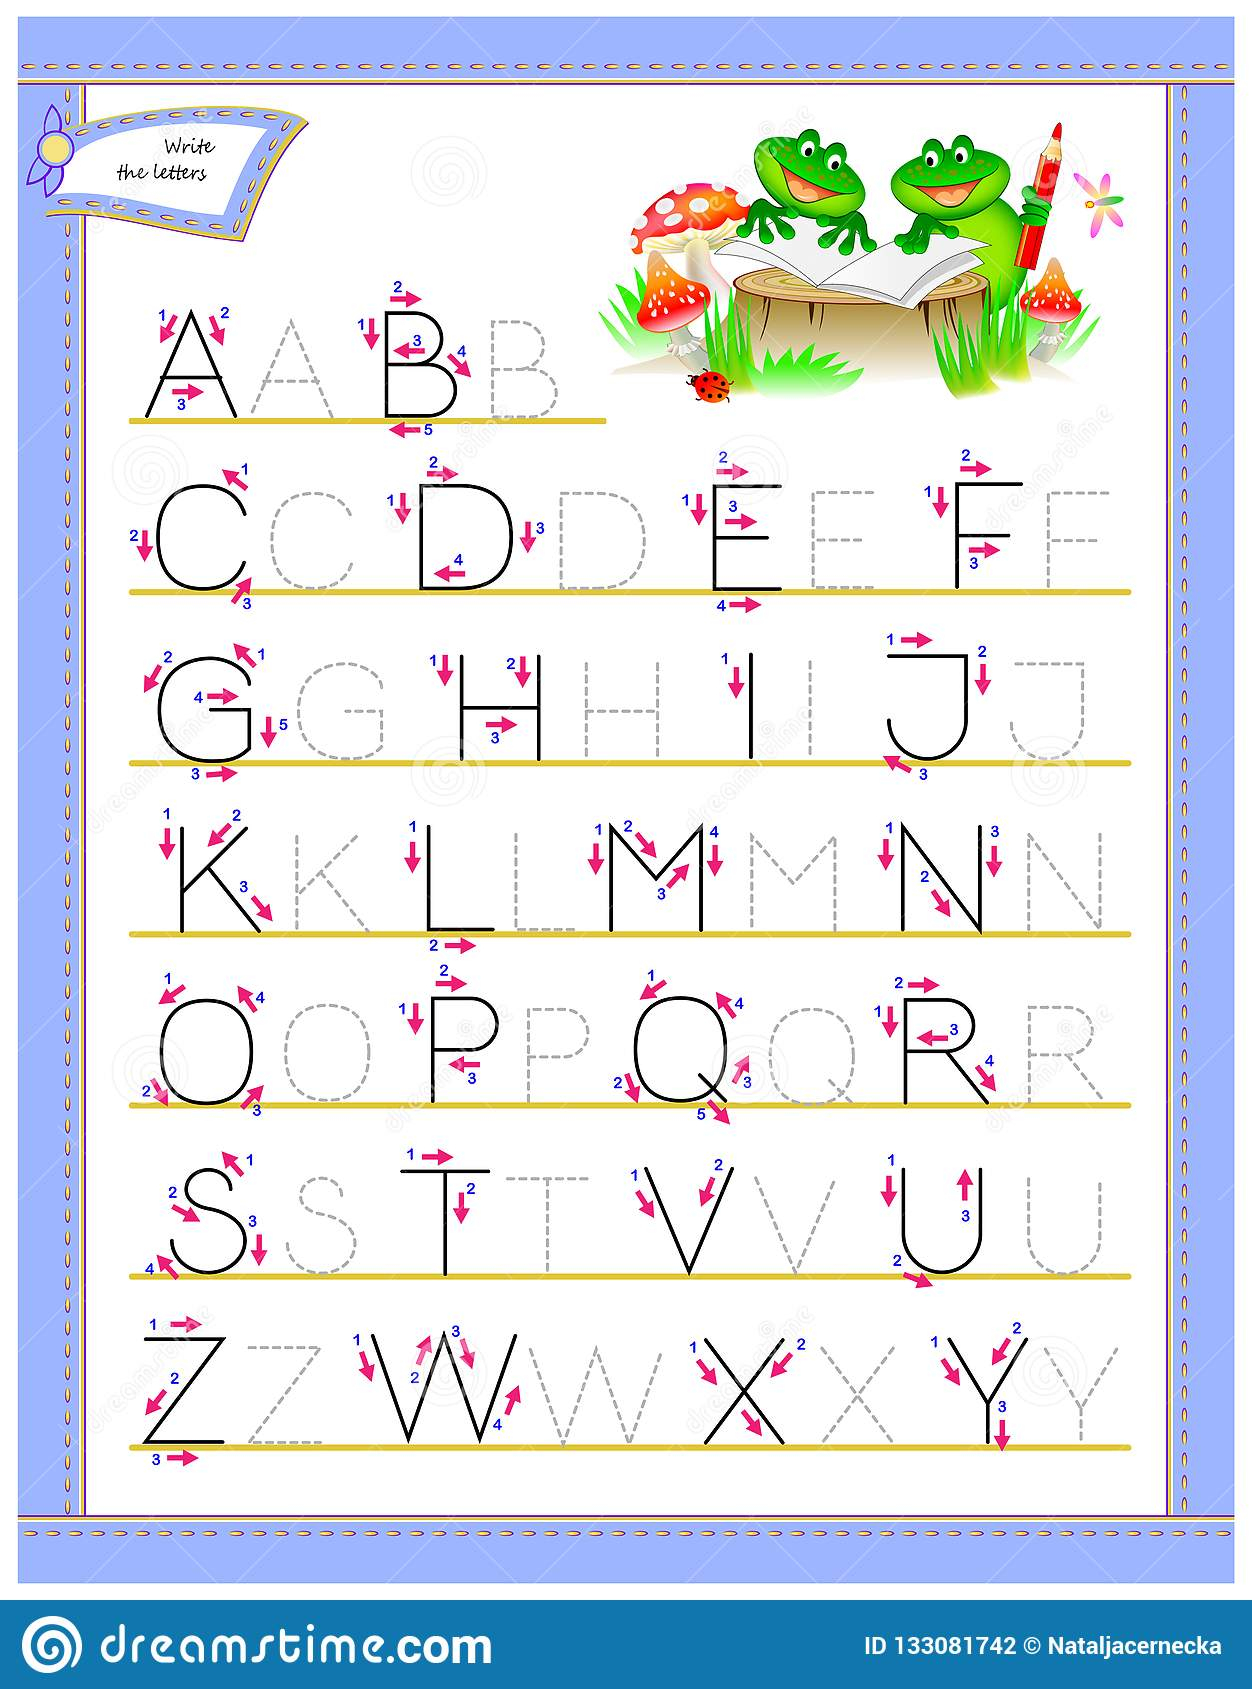 Tracing Abc Letters For Study English Alphabet. Worksheet regarding Alphabet Worksheets In English